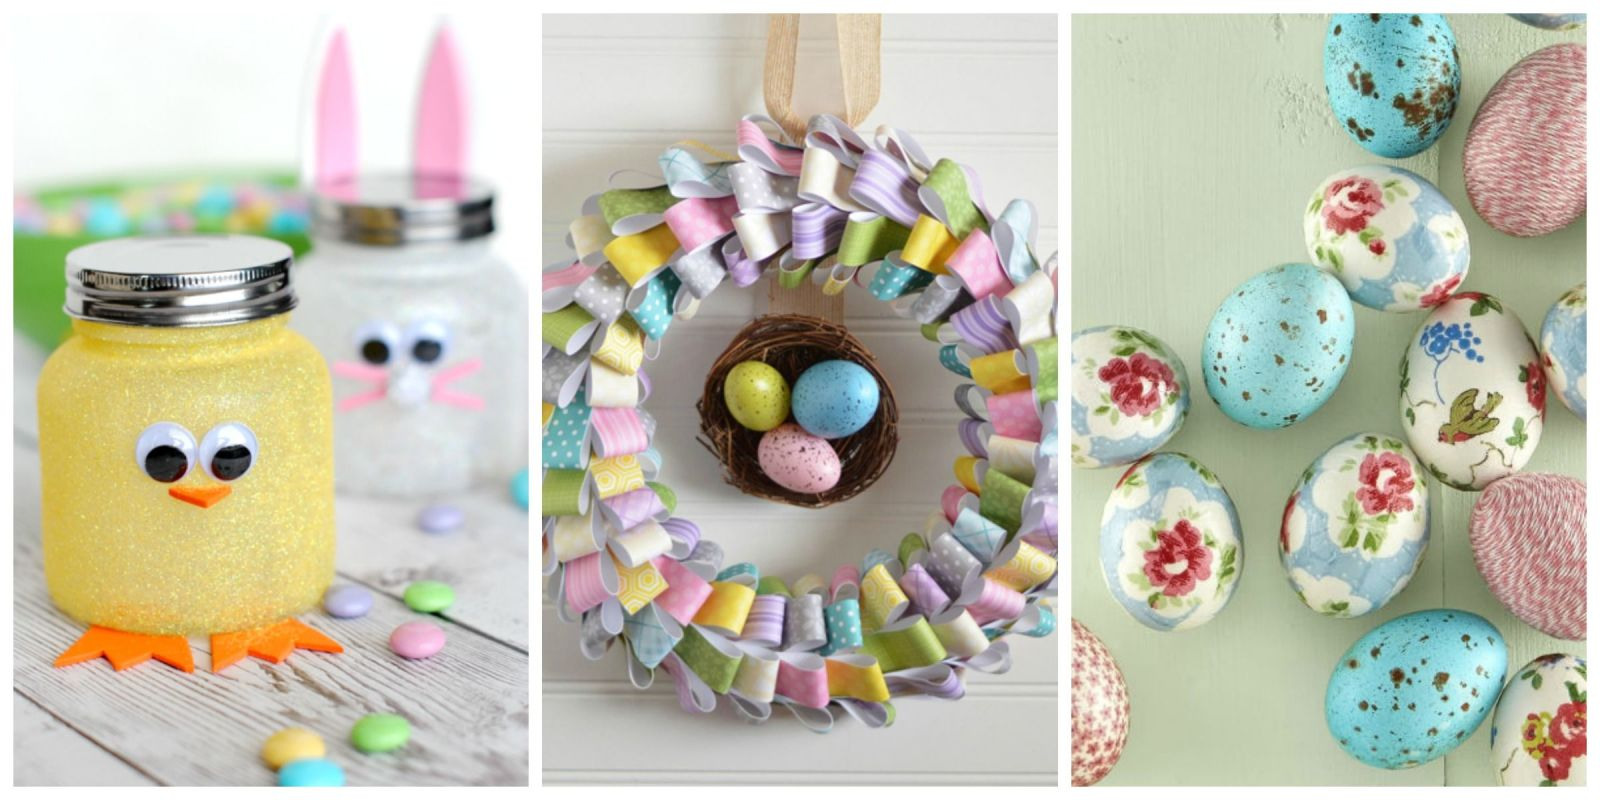 60 easy easter crafts ideas for easter diy decorations gifts 60 easy easter crafts ideas for easter diy decorations gifts country living negle Image collections